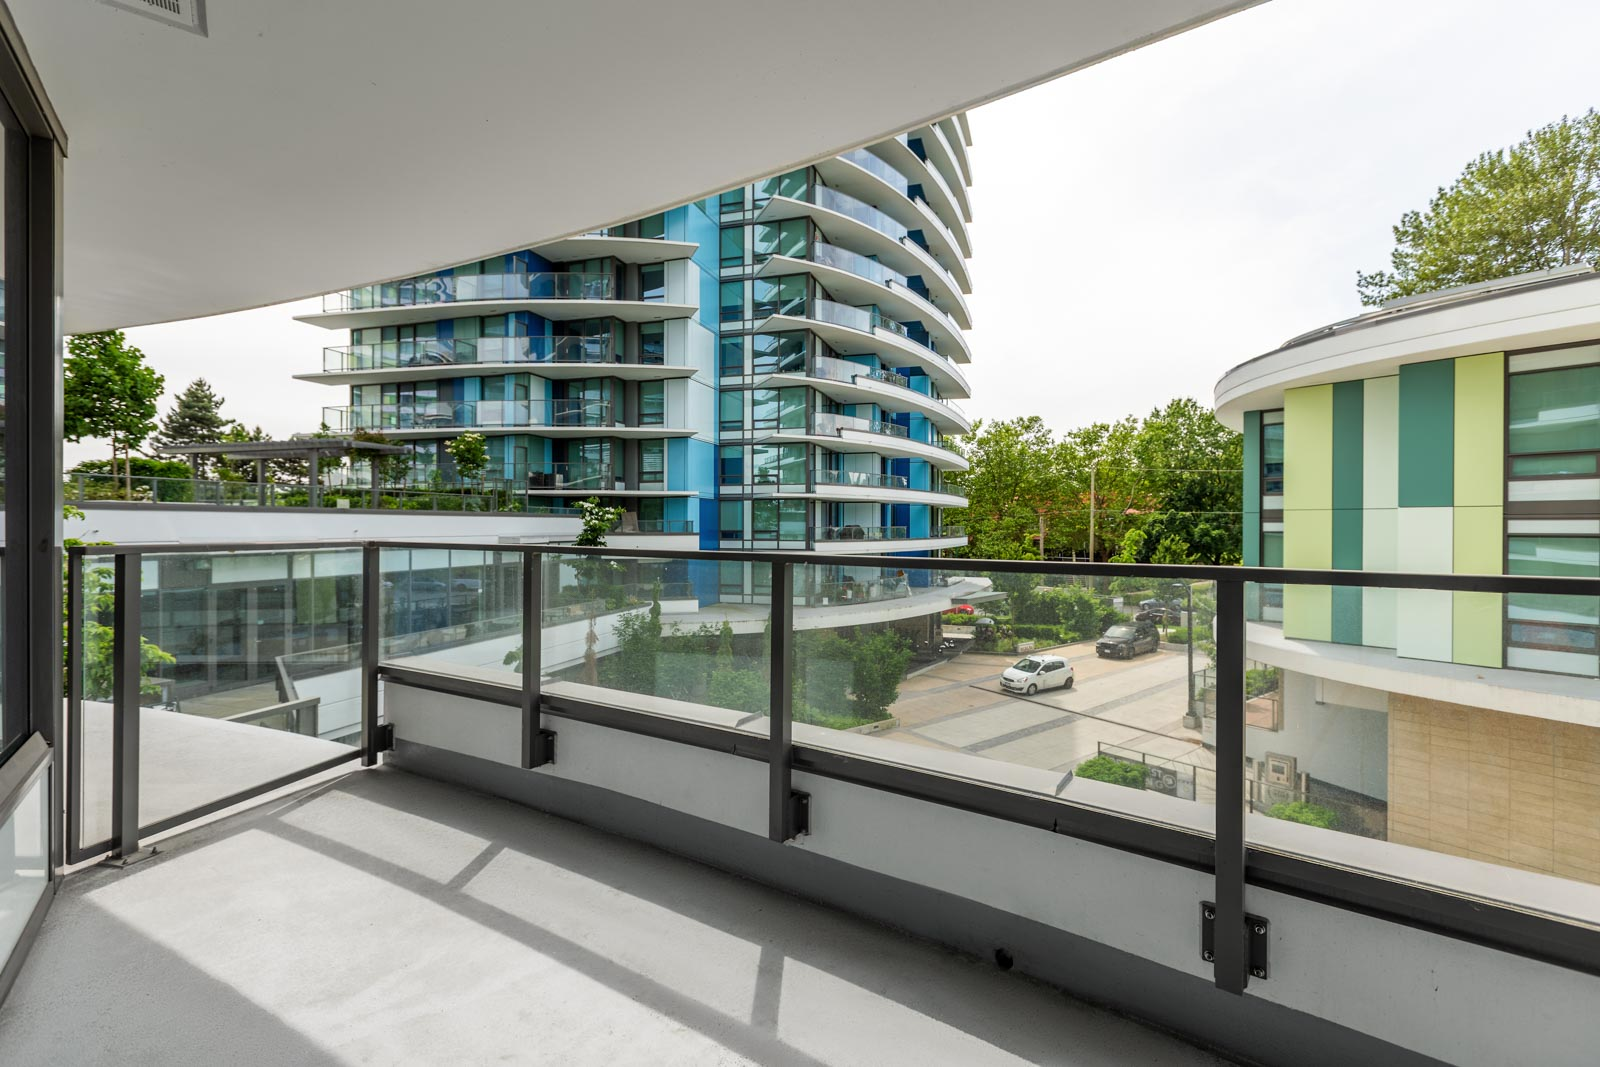 rental condo balcony area at northwest building in cambie and marine gateway neighbourhood of vancouver westside managed by birds nest properties